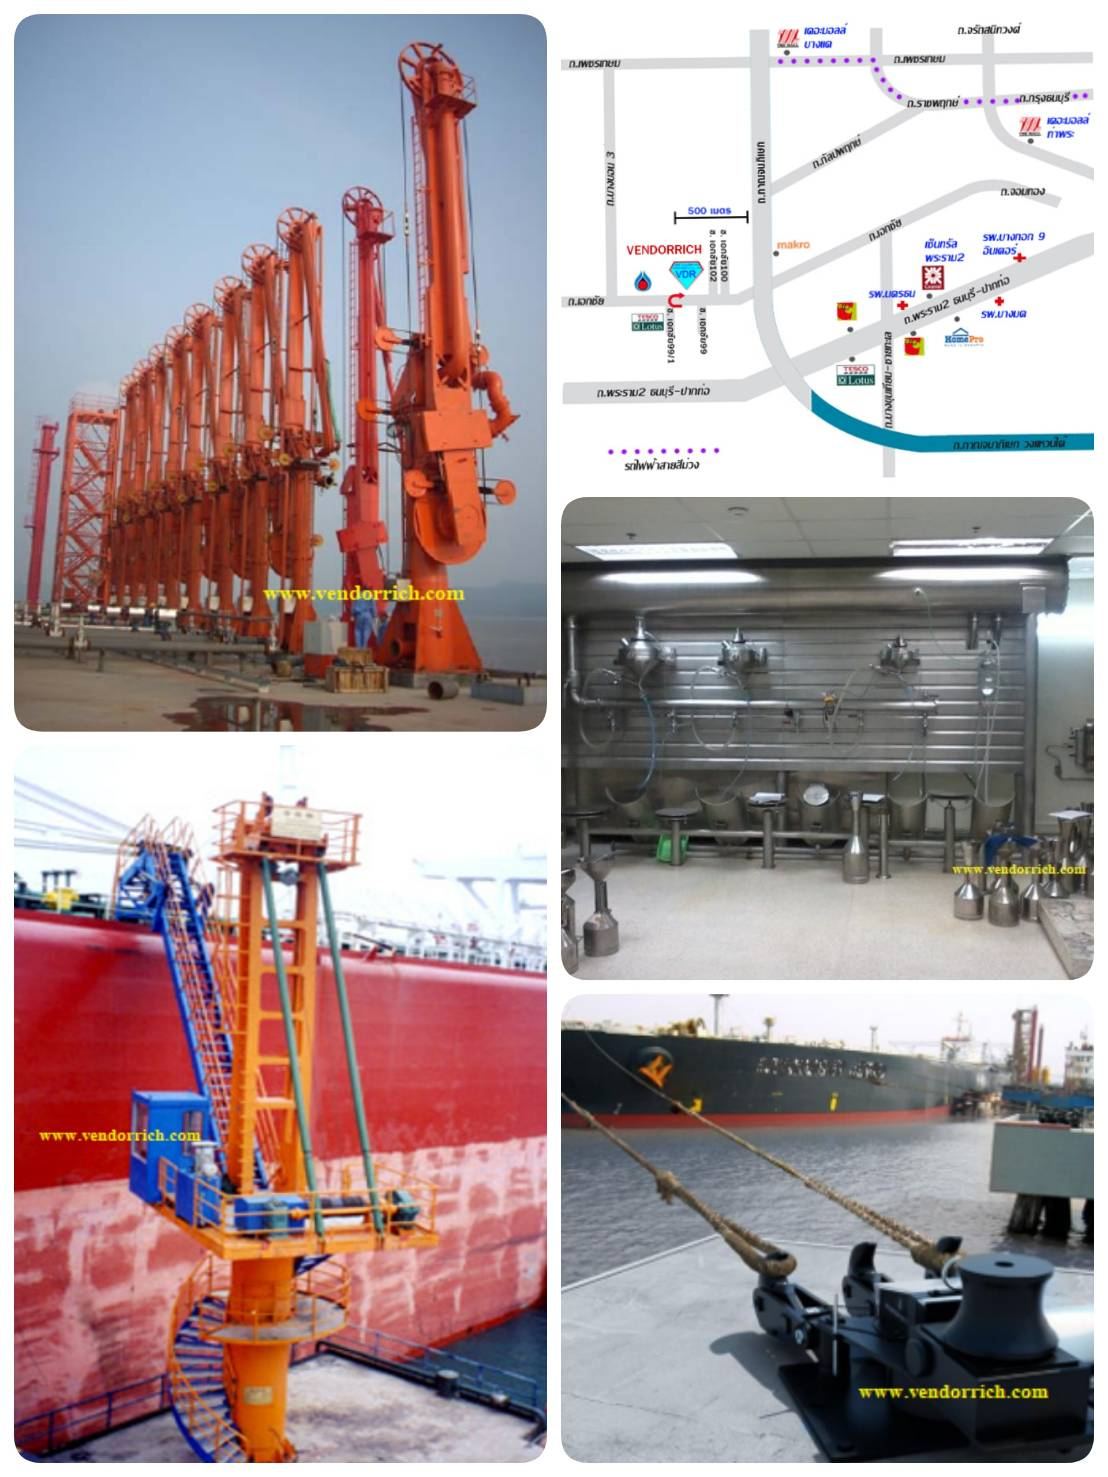 Prover Tank, Marine Loading Arm, Truck Loading Arm , Tower Gangway, Valve